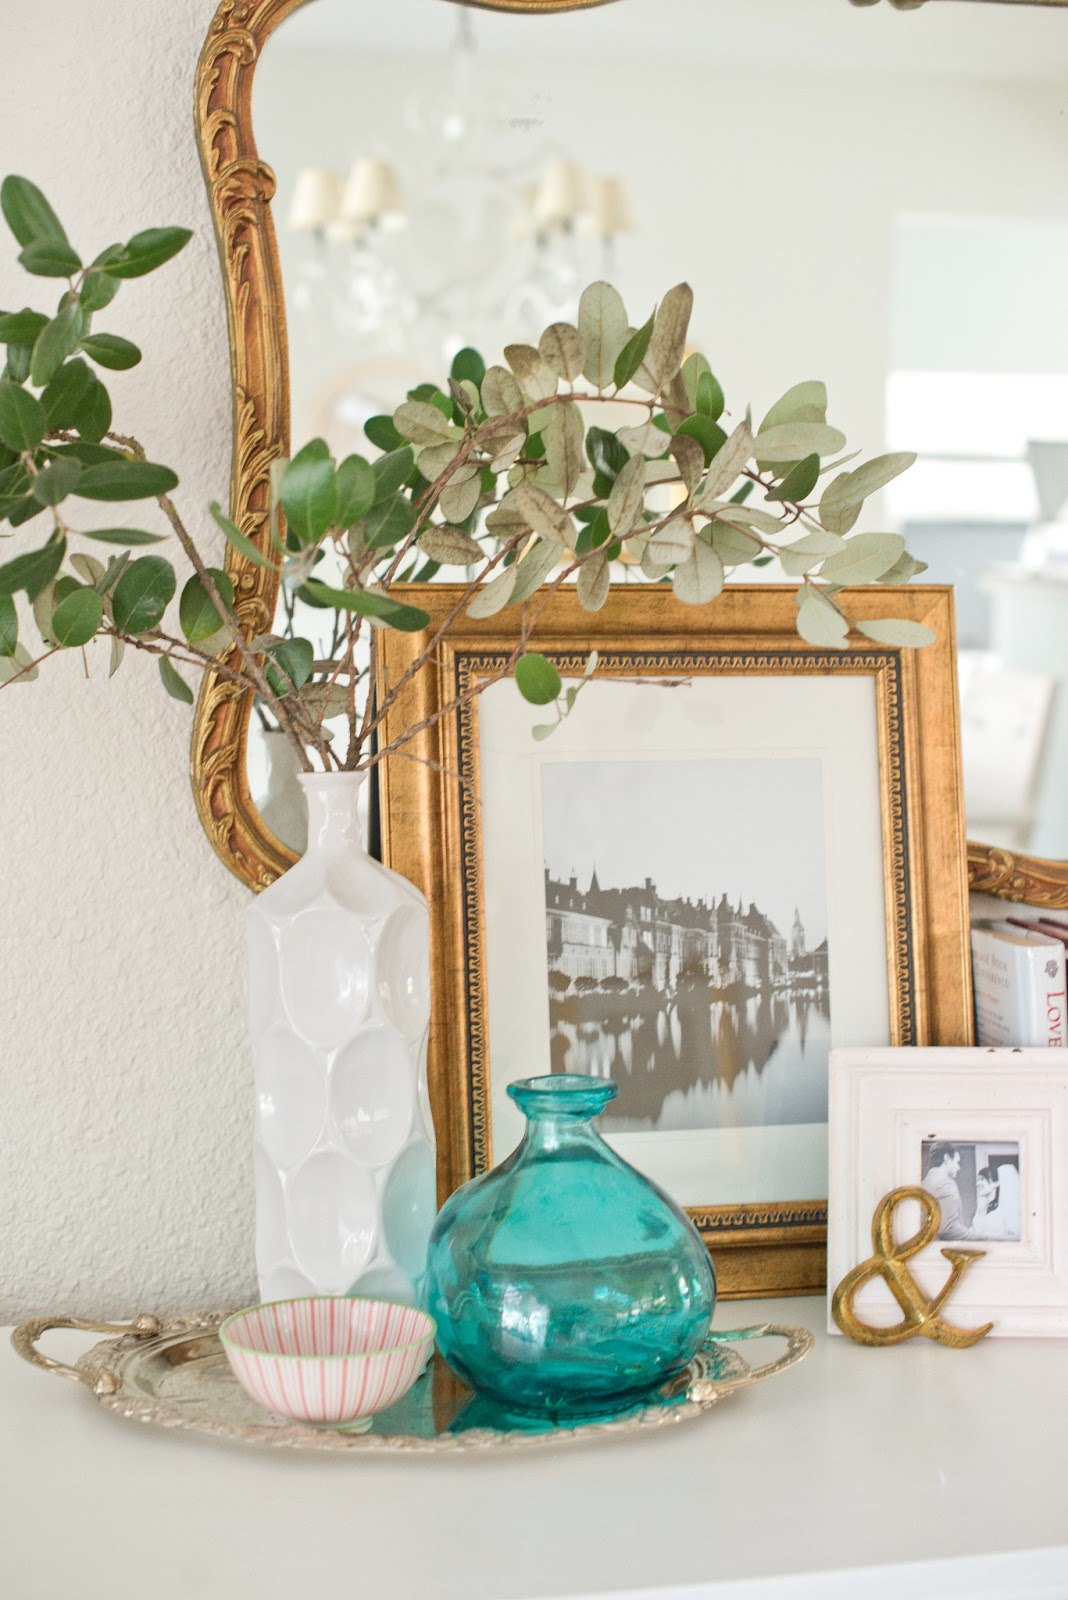 Domestic fashionista around the house january vignettes for Home decorations for january